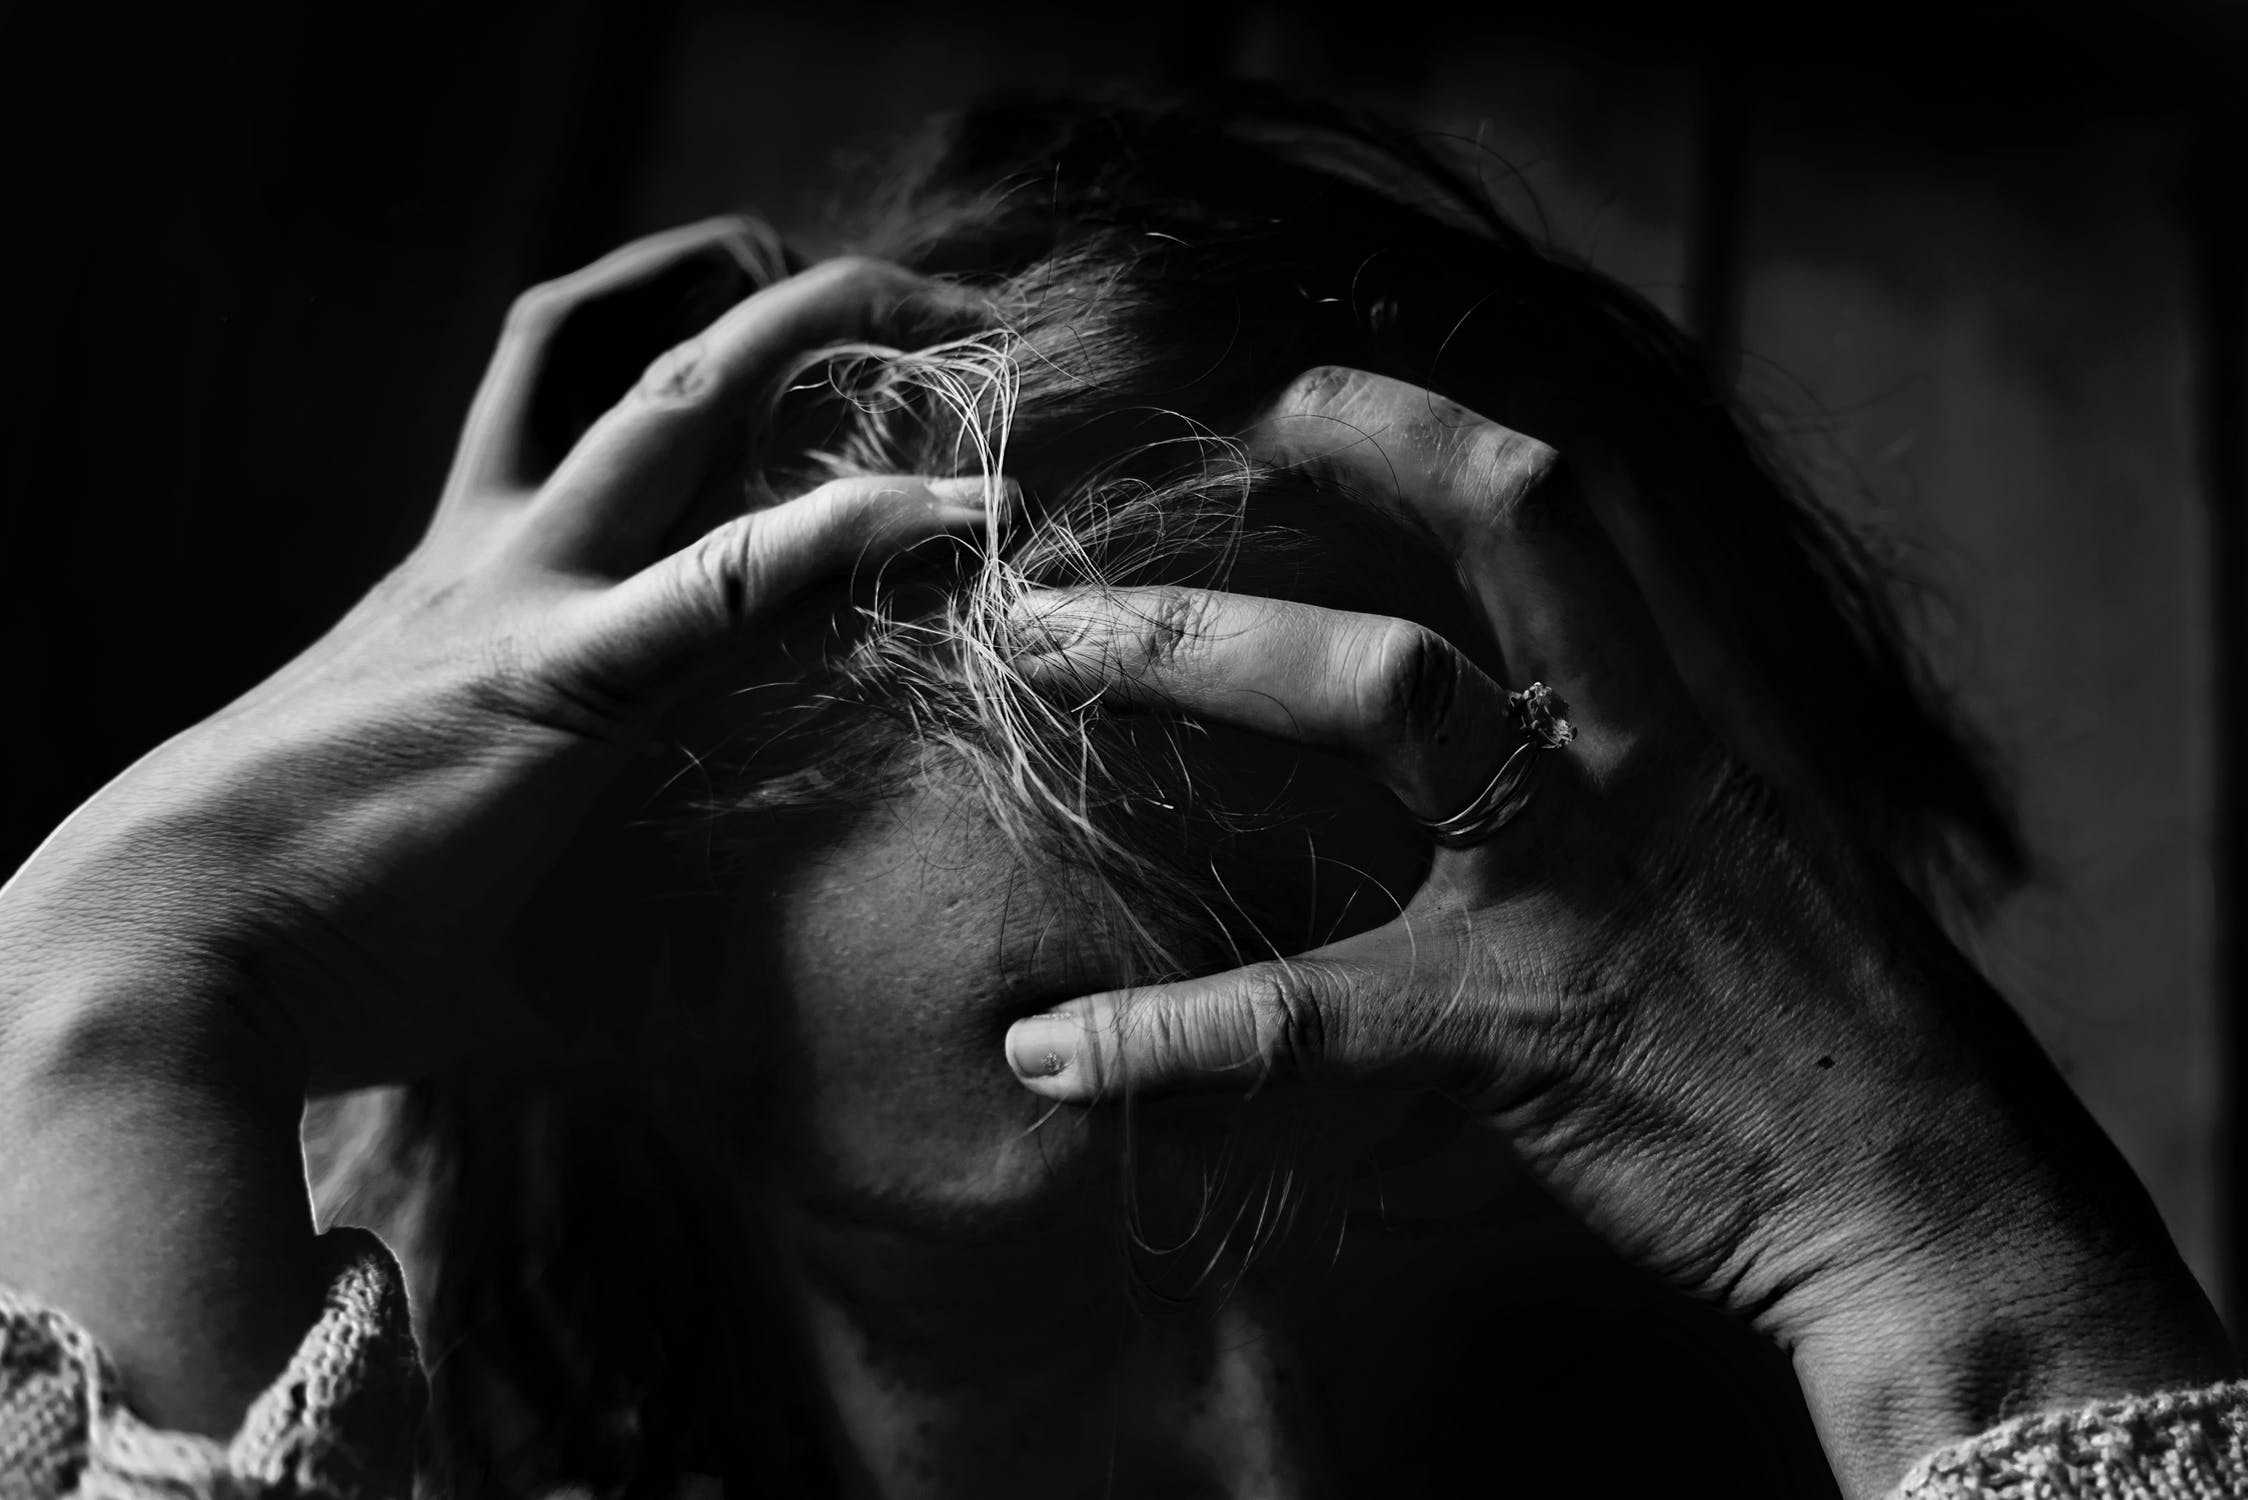 pexels photo 551588 - Nighttime Depression And How to Avoid Depression at Night